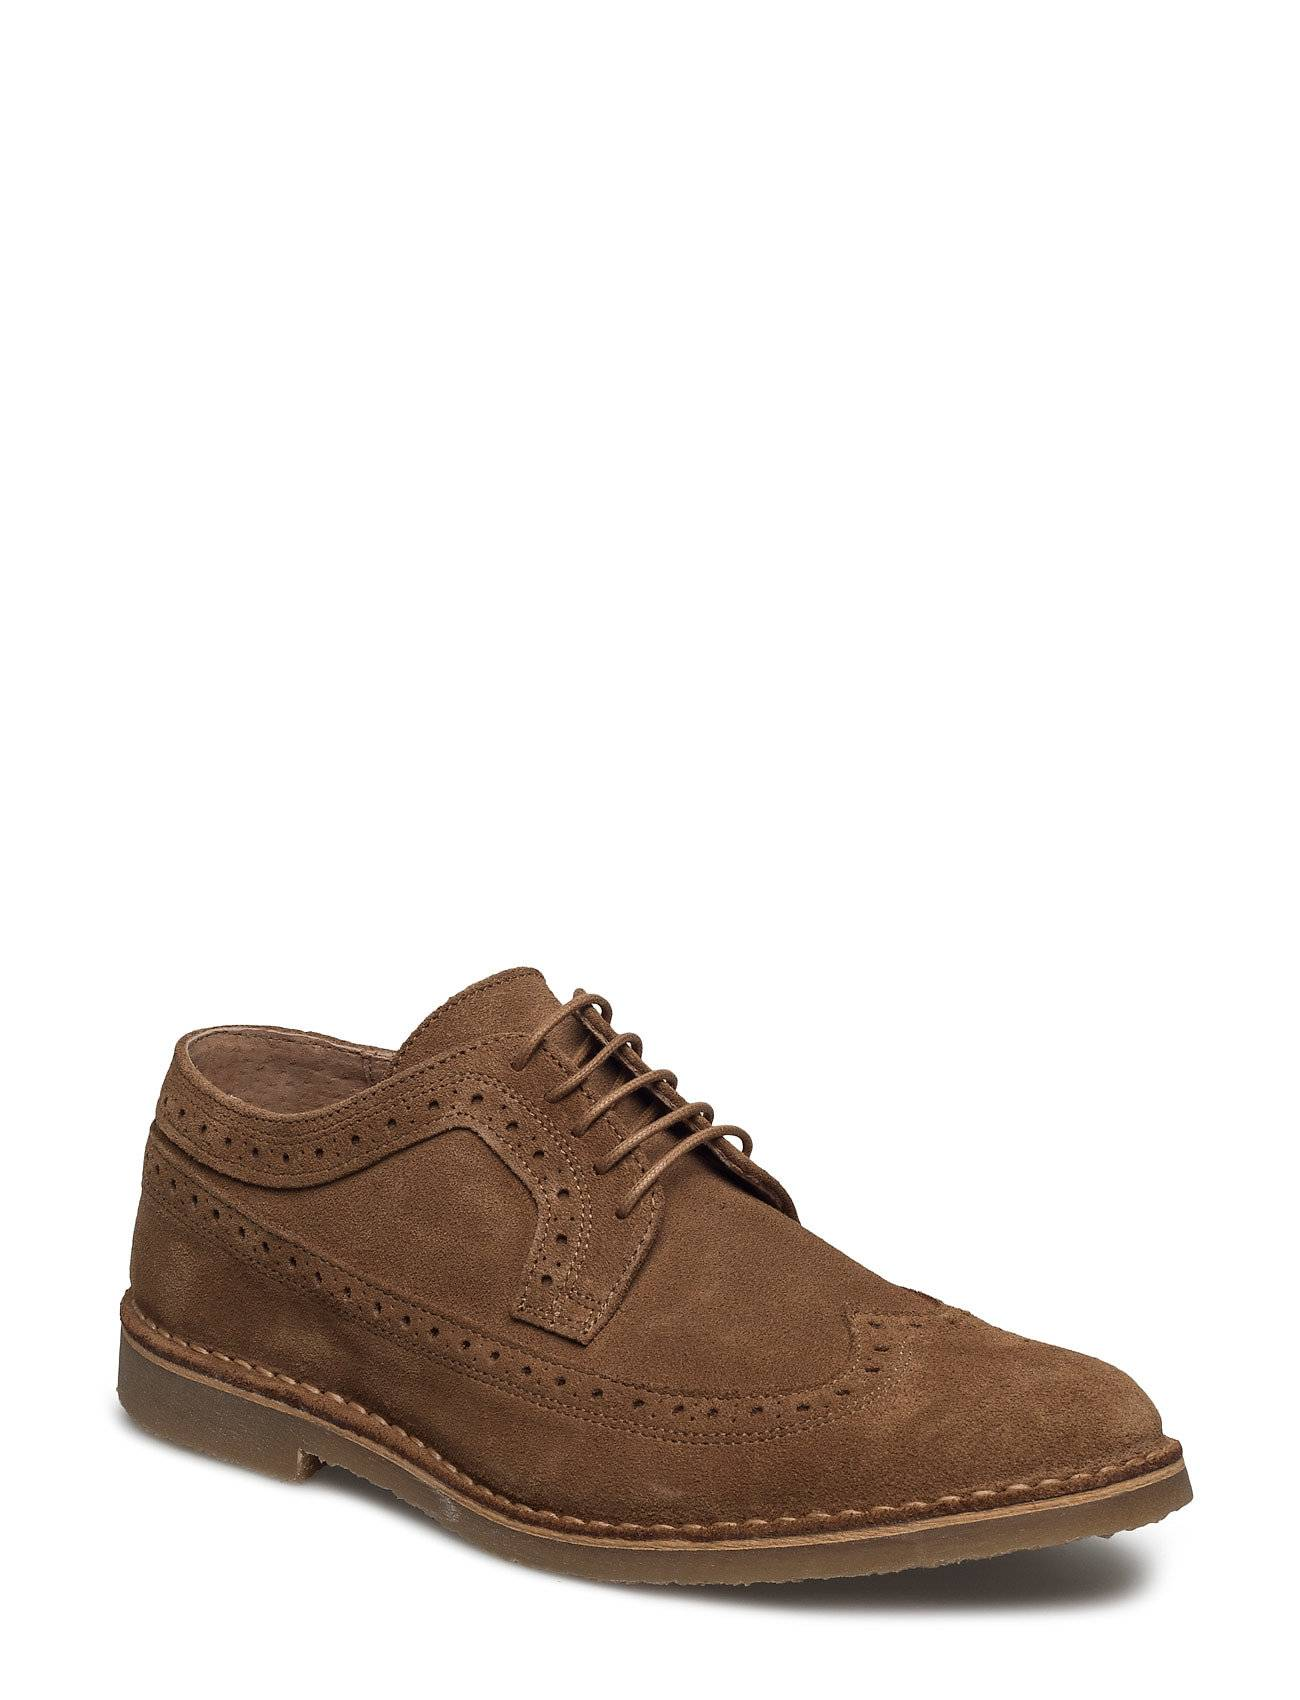 Selected Homme Shhroyce New Light Suede Brogue Shoe